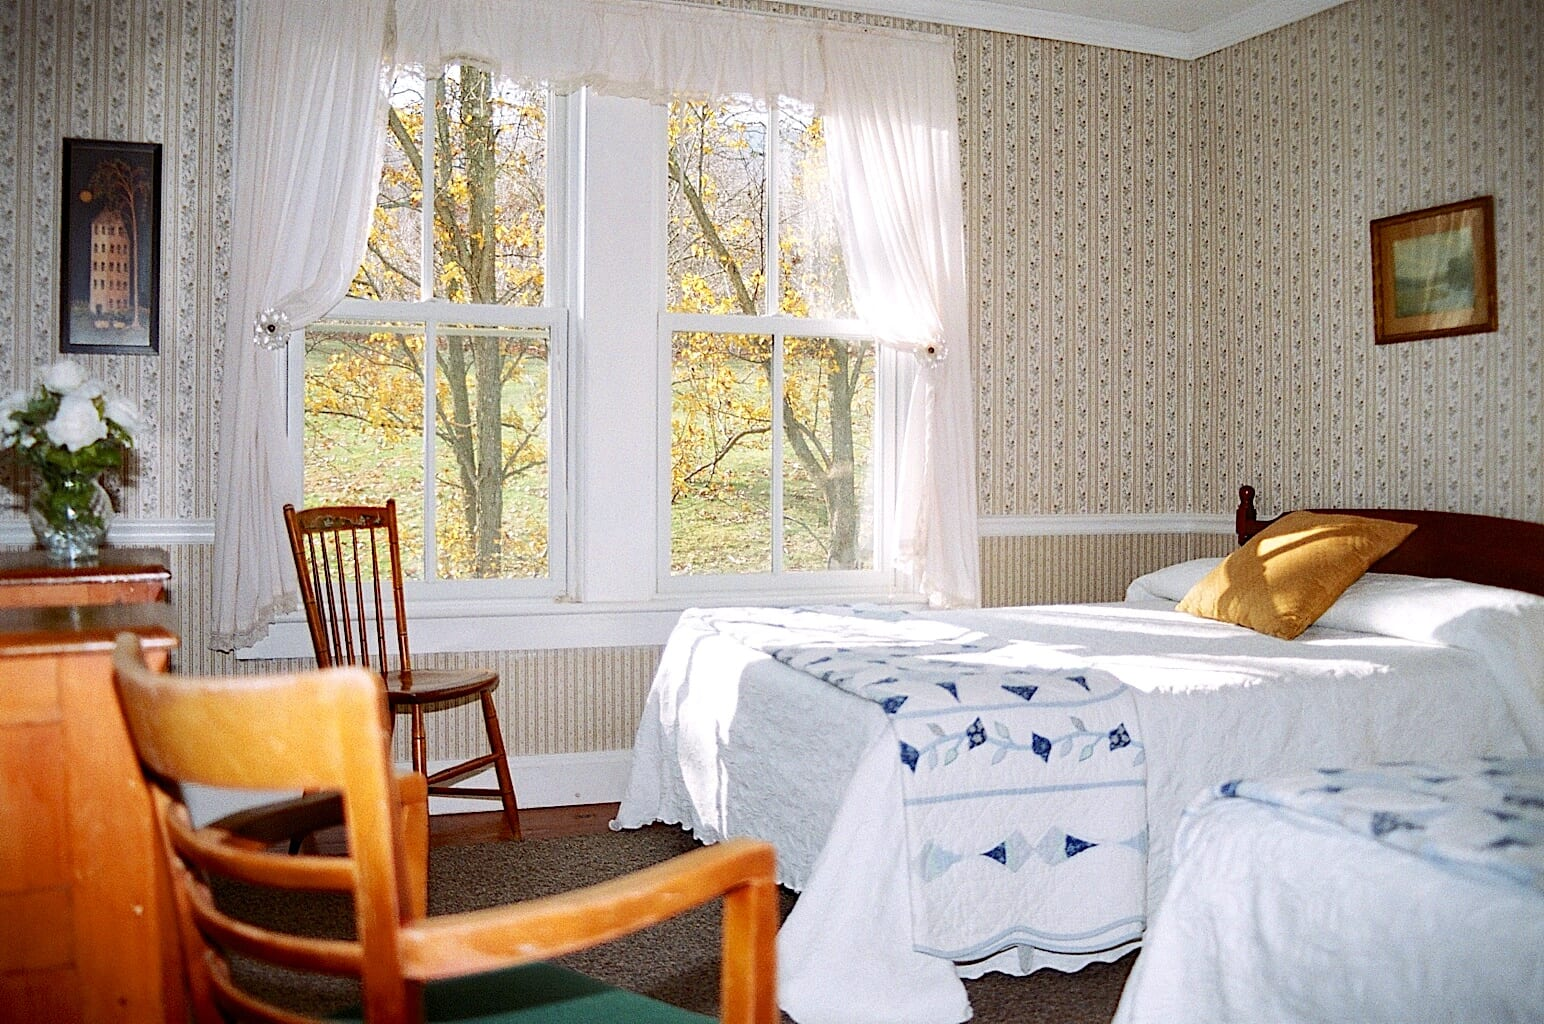 Bedroom at Winter Clove Inn with two double beds and large window.